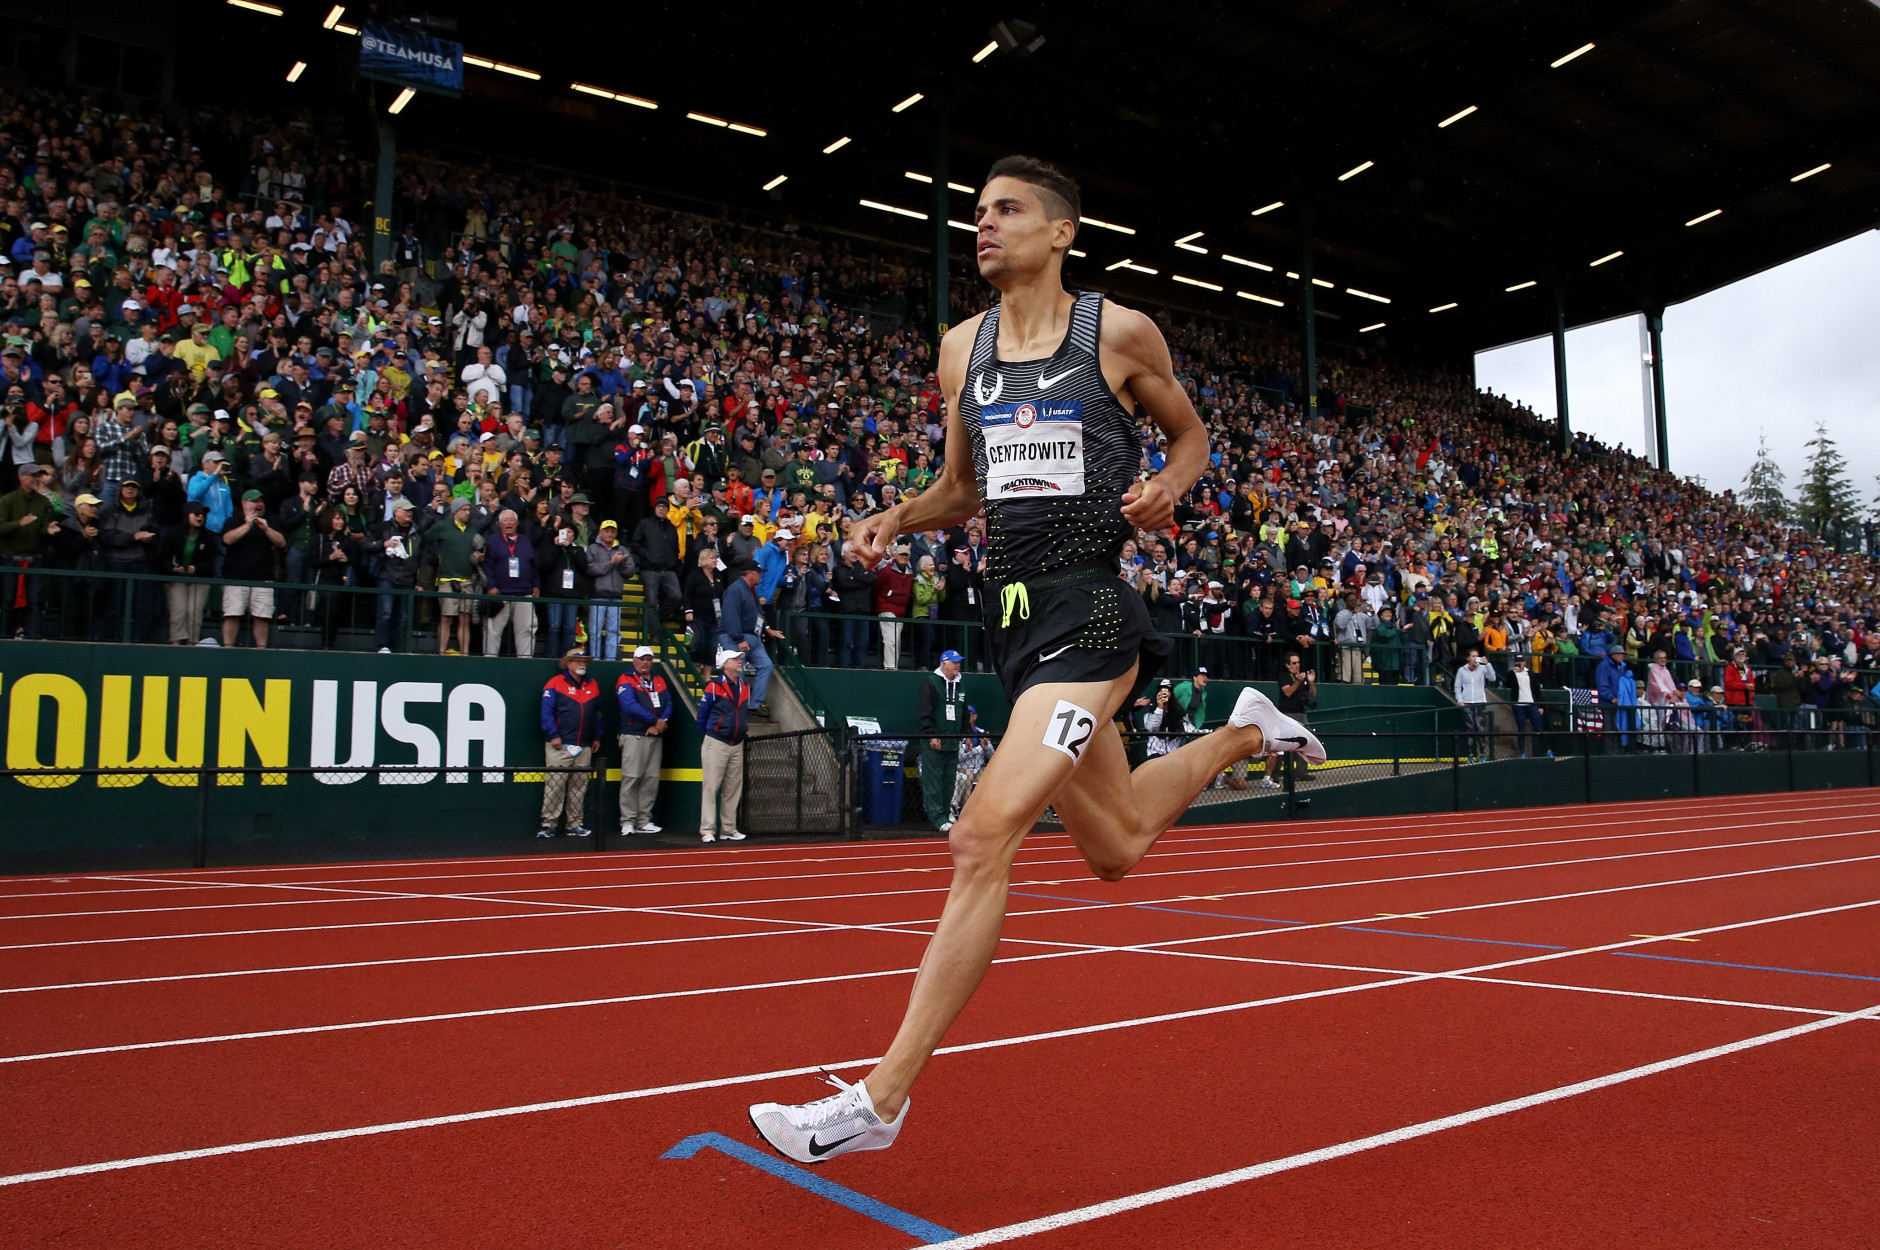 EUGENE, OR - JULY 10:  Matthew Centrowitz, first place, competes in the Men's 1500 Meter Final during the 2016 U.S. Olympic Track & Field Team Trials at Hayward Field on July 10, 2016 in Eugene, Oregon.  (Photo by Andy Lyons/Getty Images)